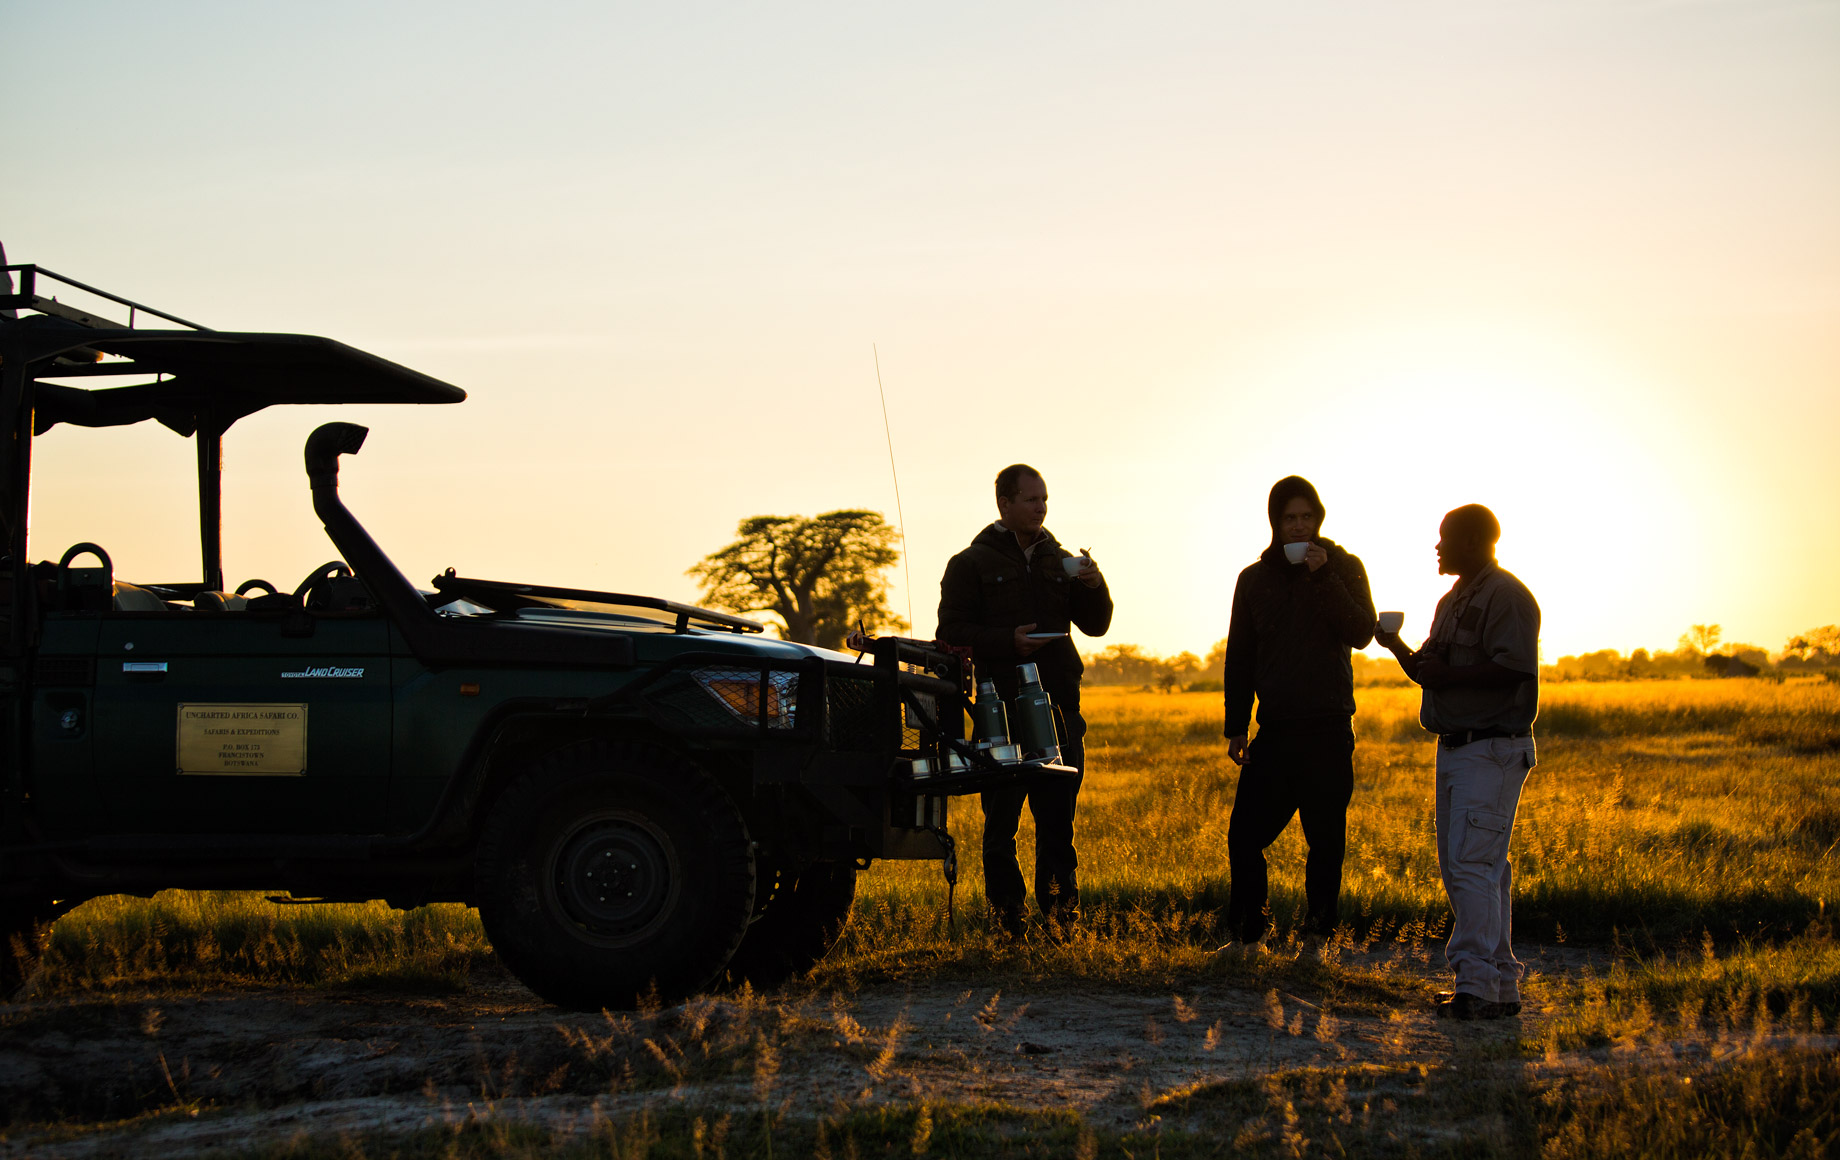 Safari-goers stand near vehicle at sunset